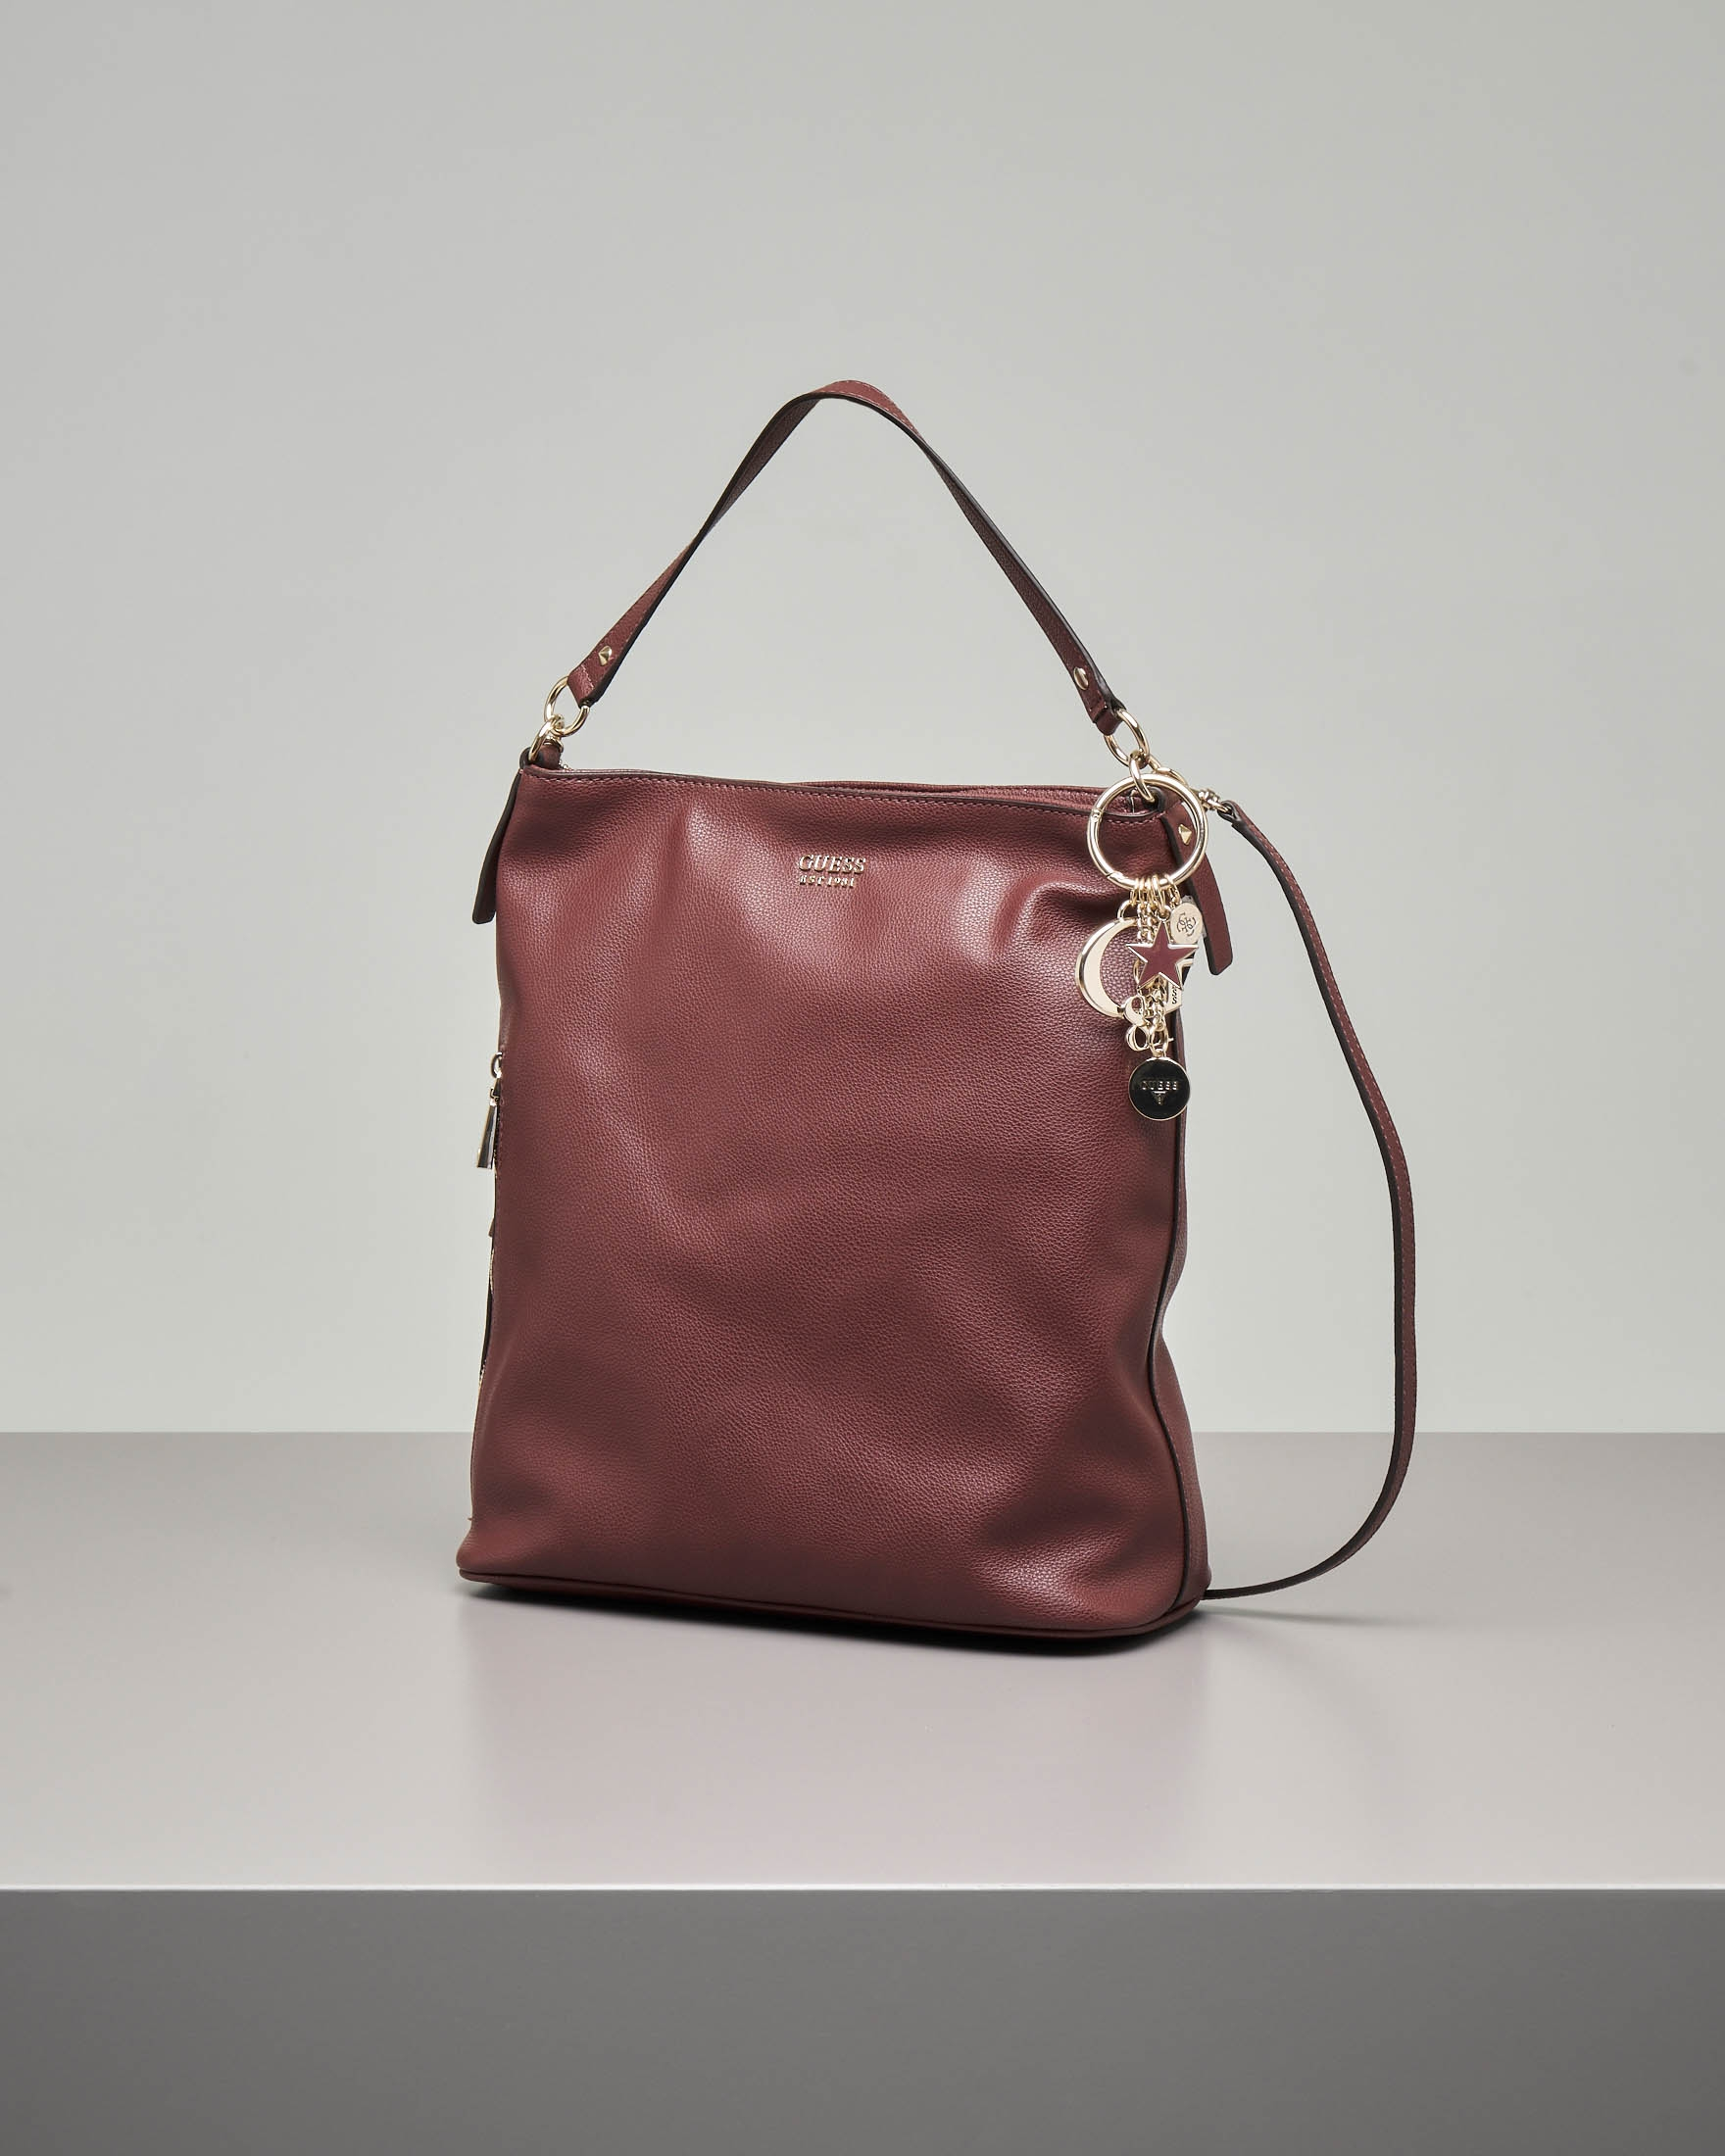 Shopping bag a sacca bordeaux in ecopelle con tracolla staccabile